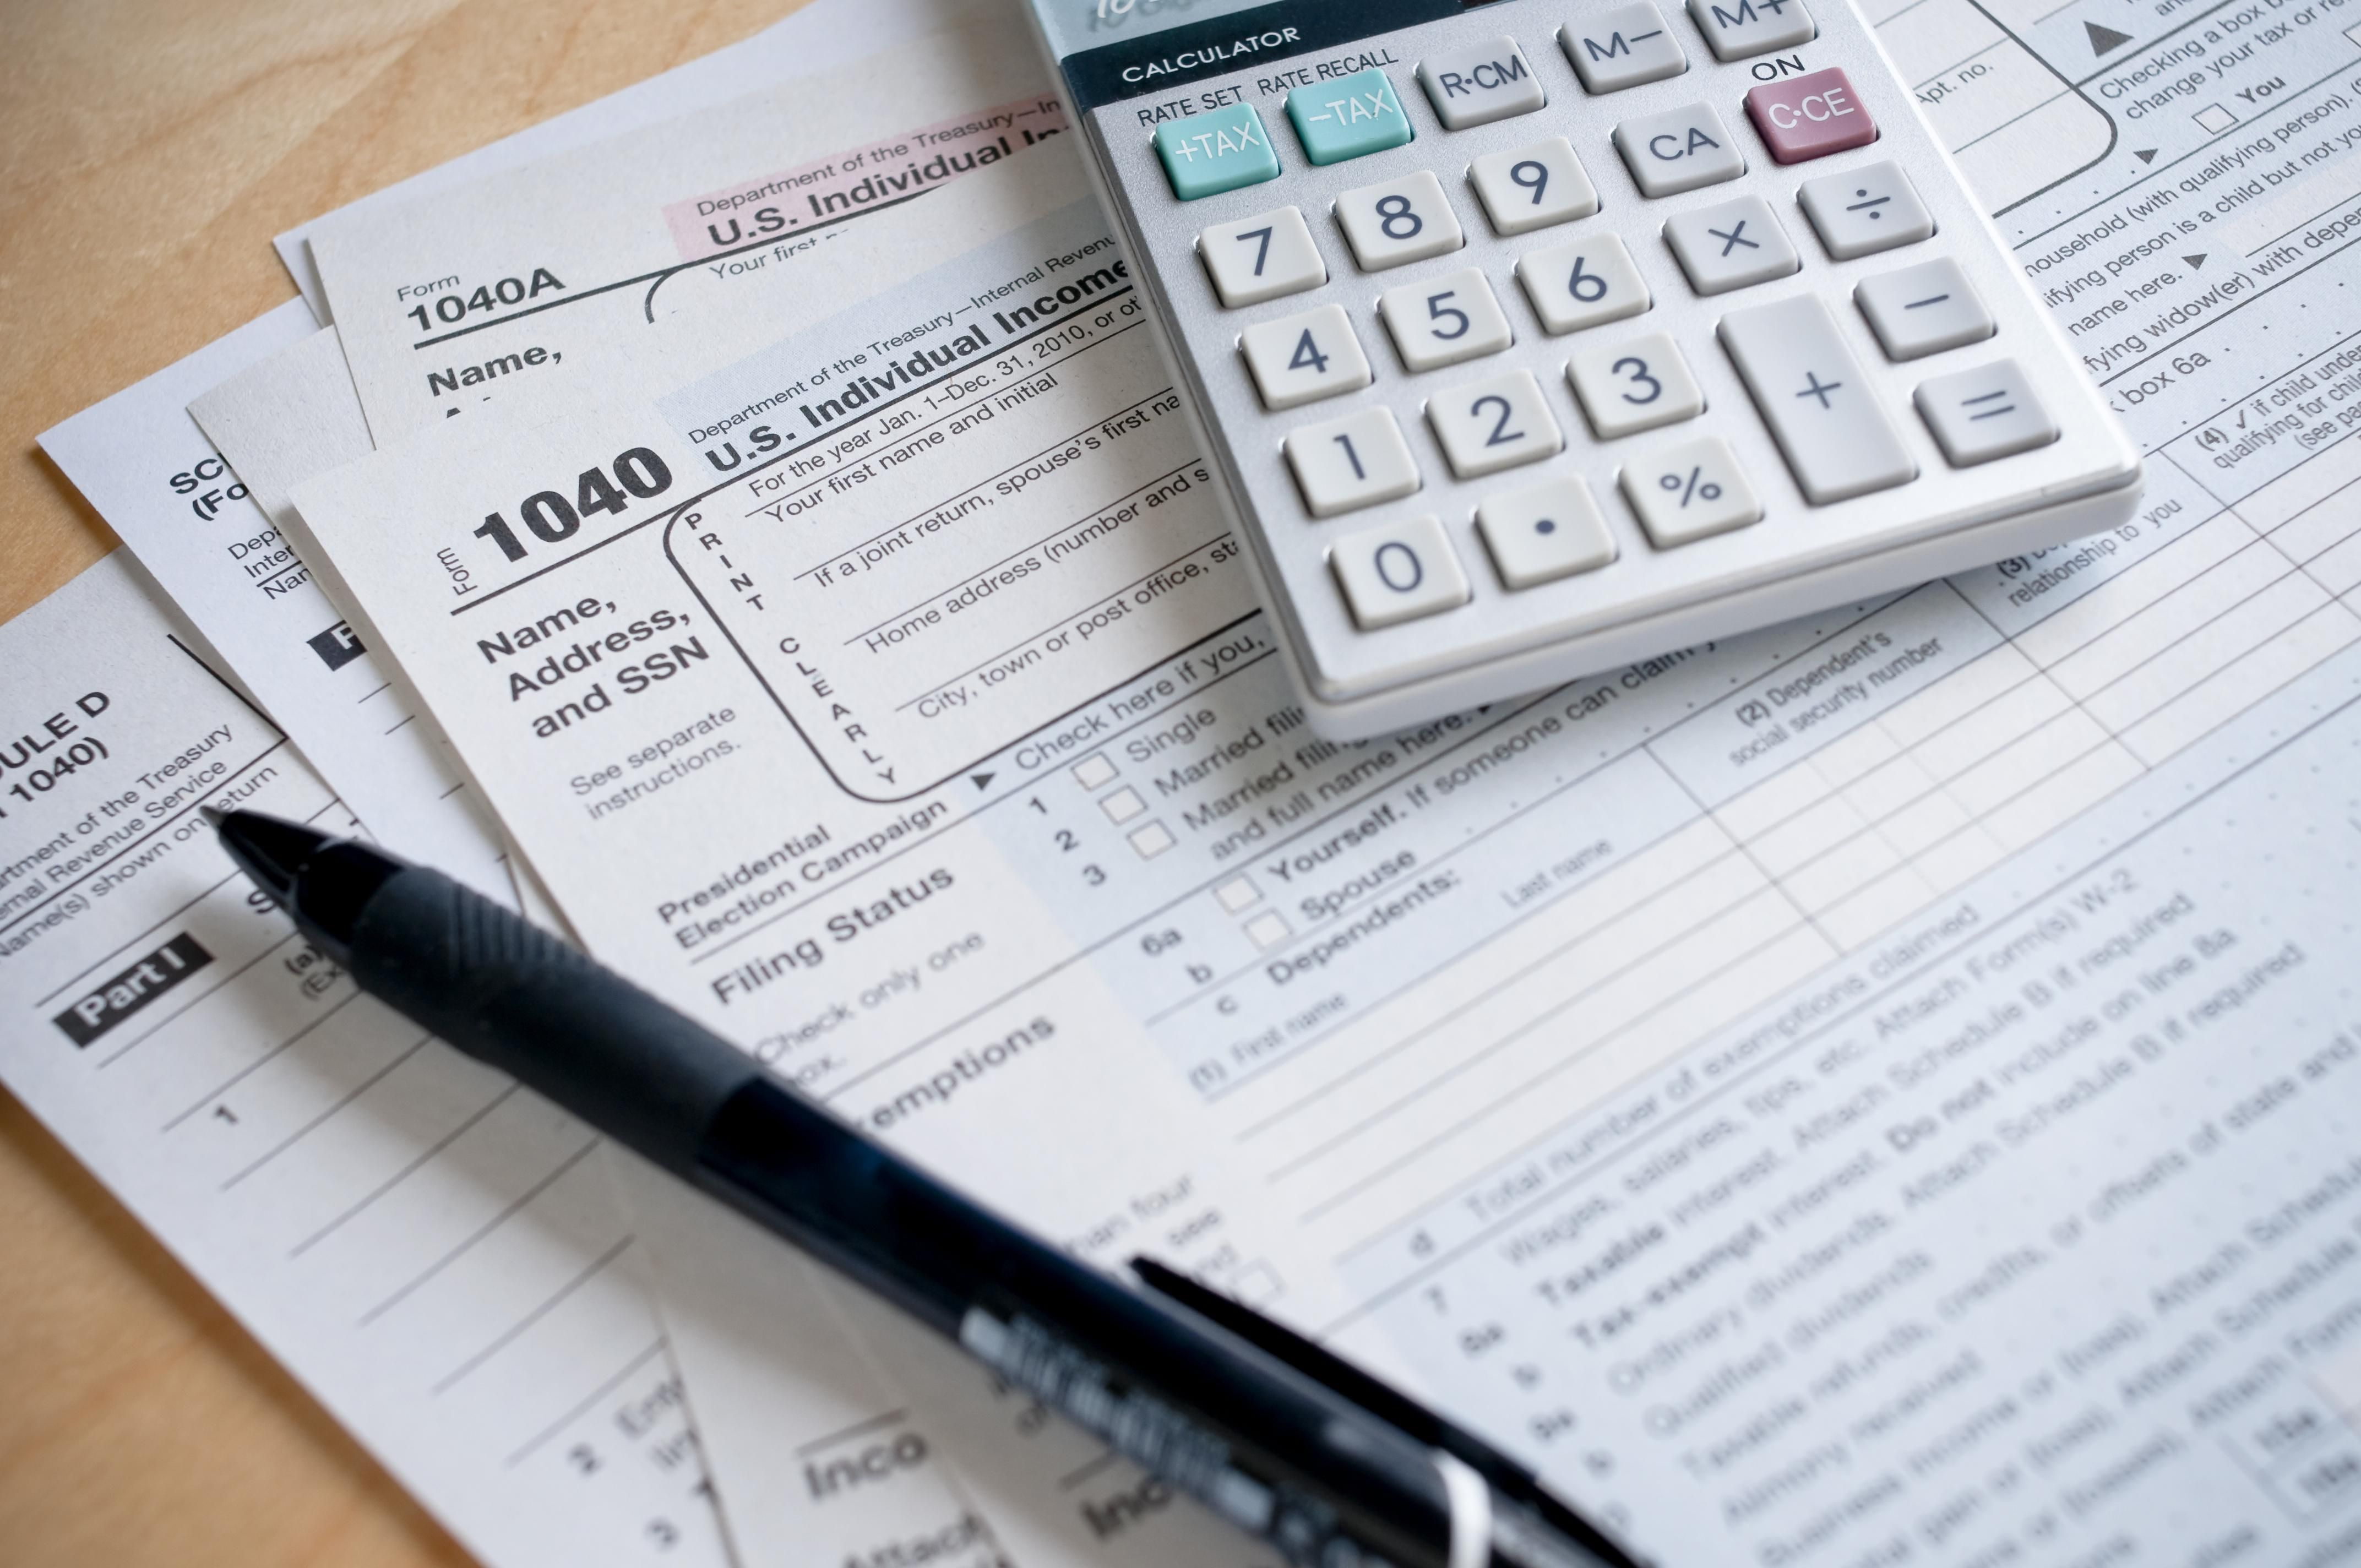 Overview Of The Dependent And Child Care Tax Credit